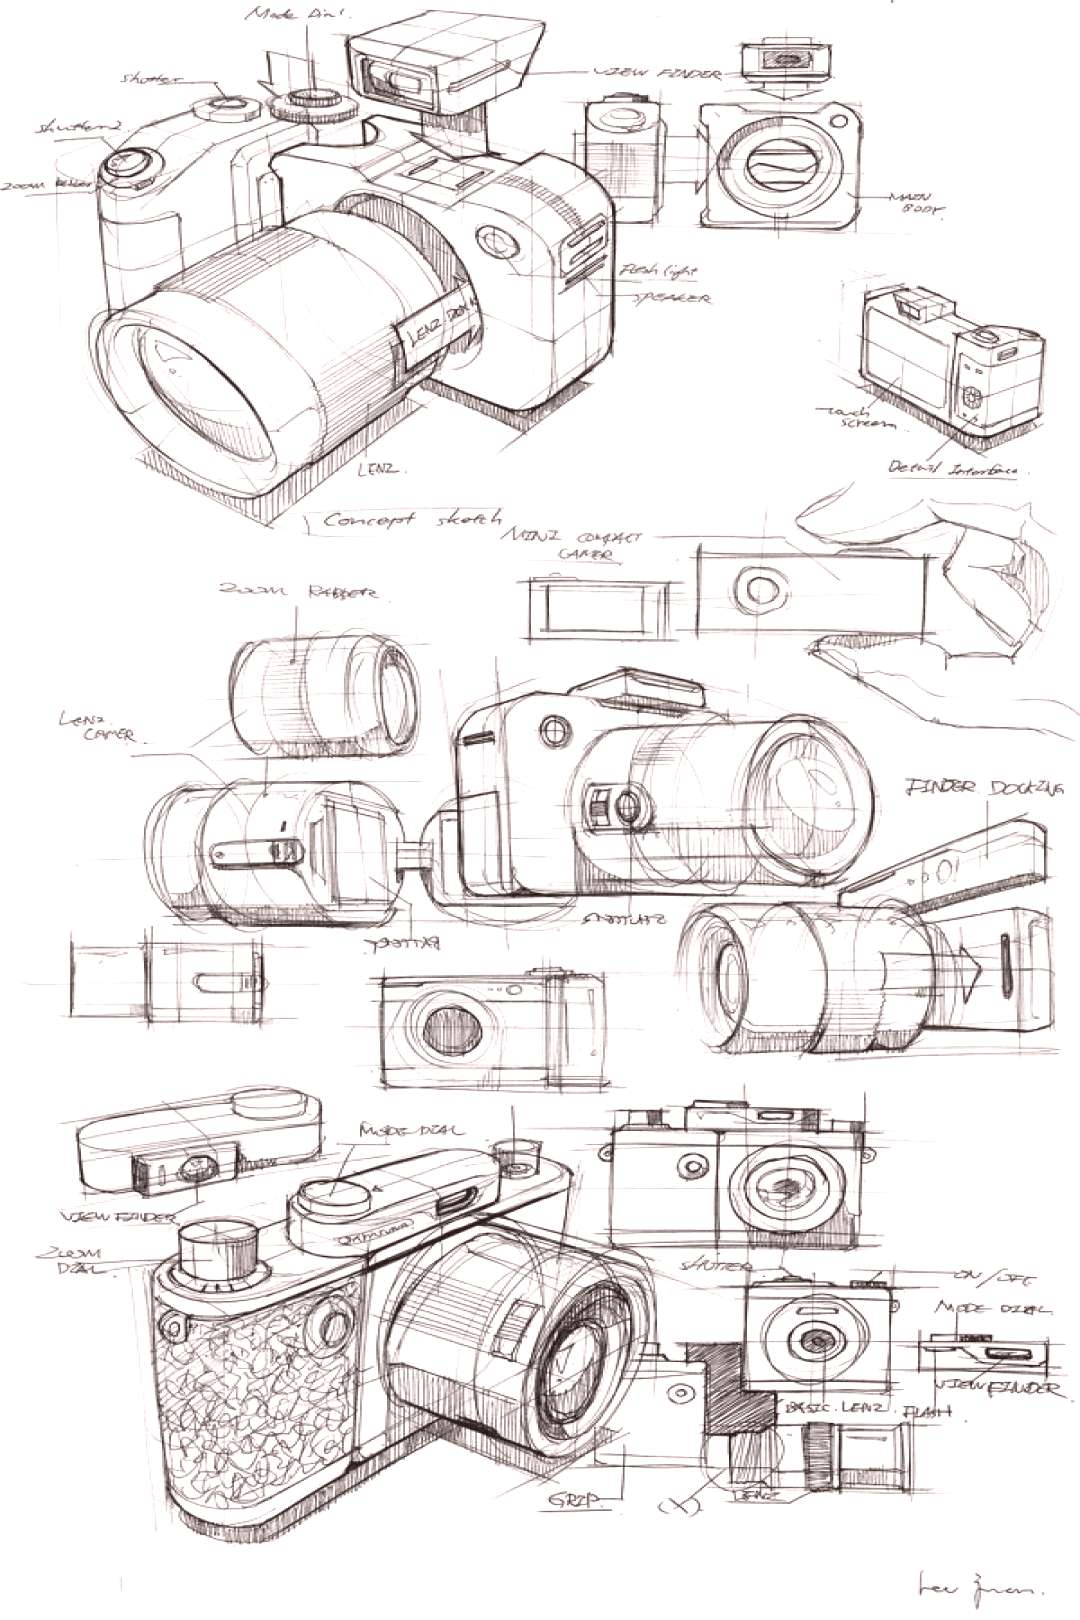 Sketch Archiving 2012 - Since electronic devices such as mobile phones, tablets and computers have